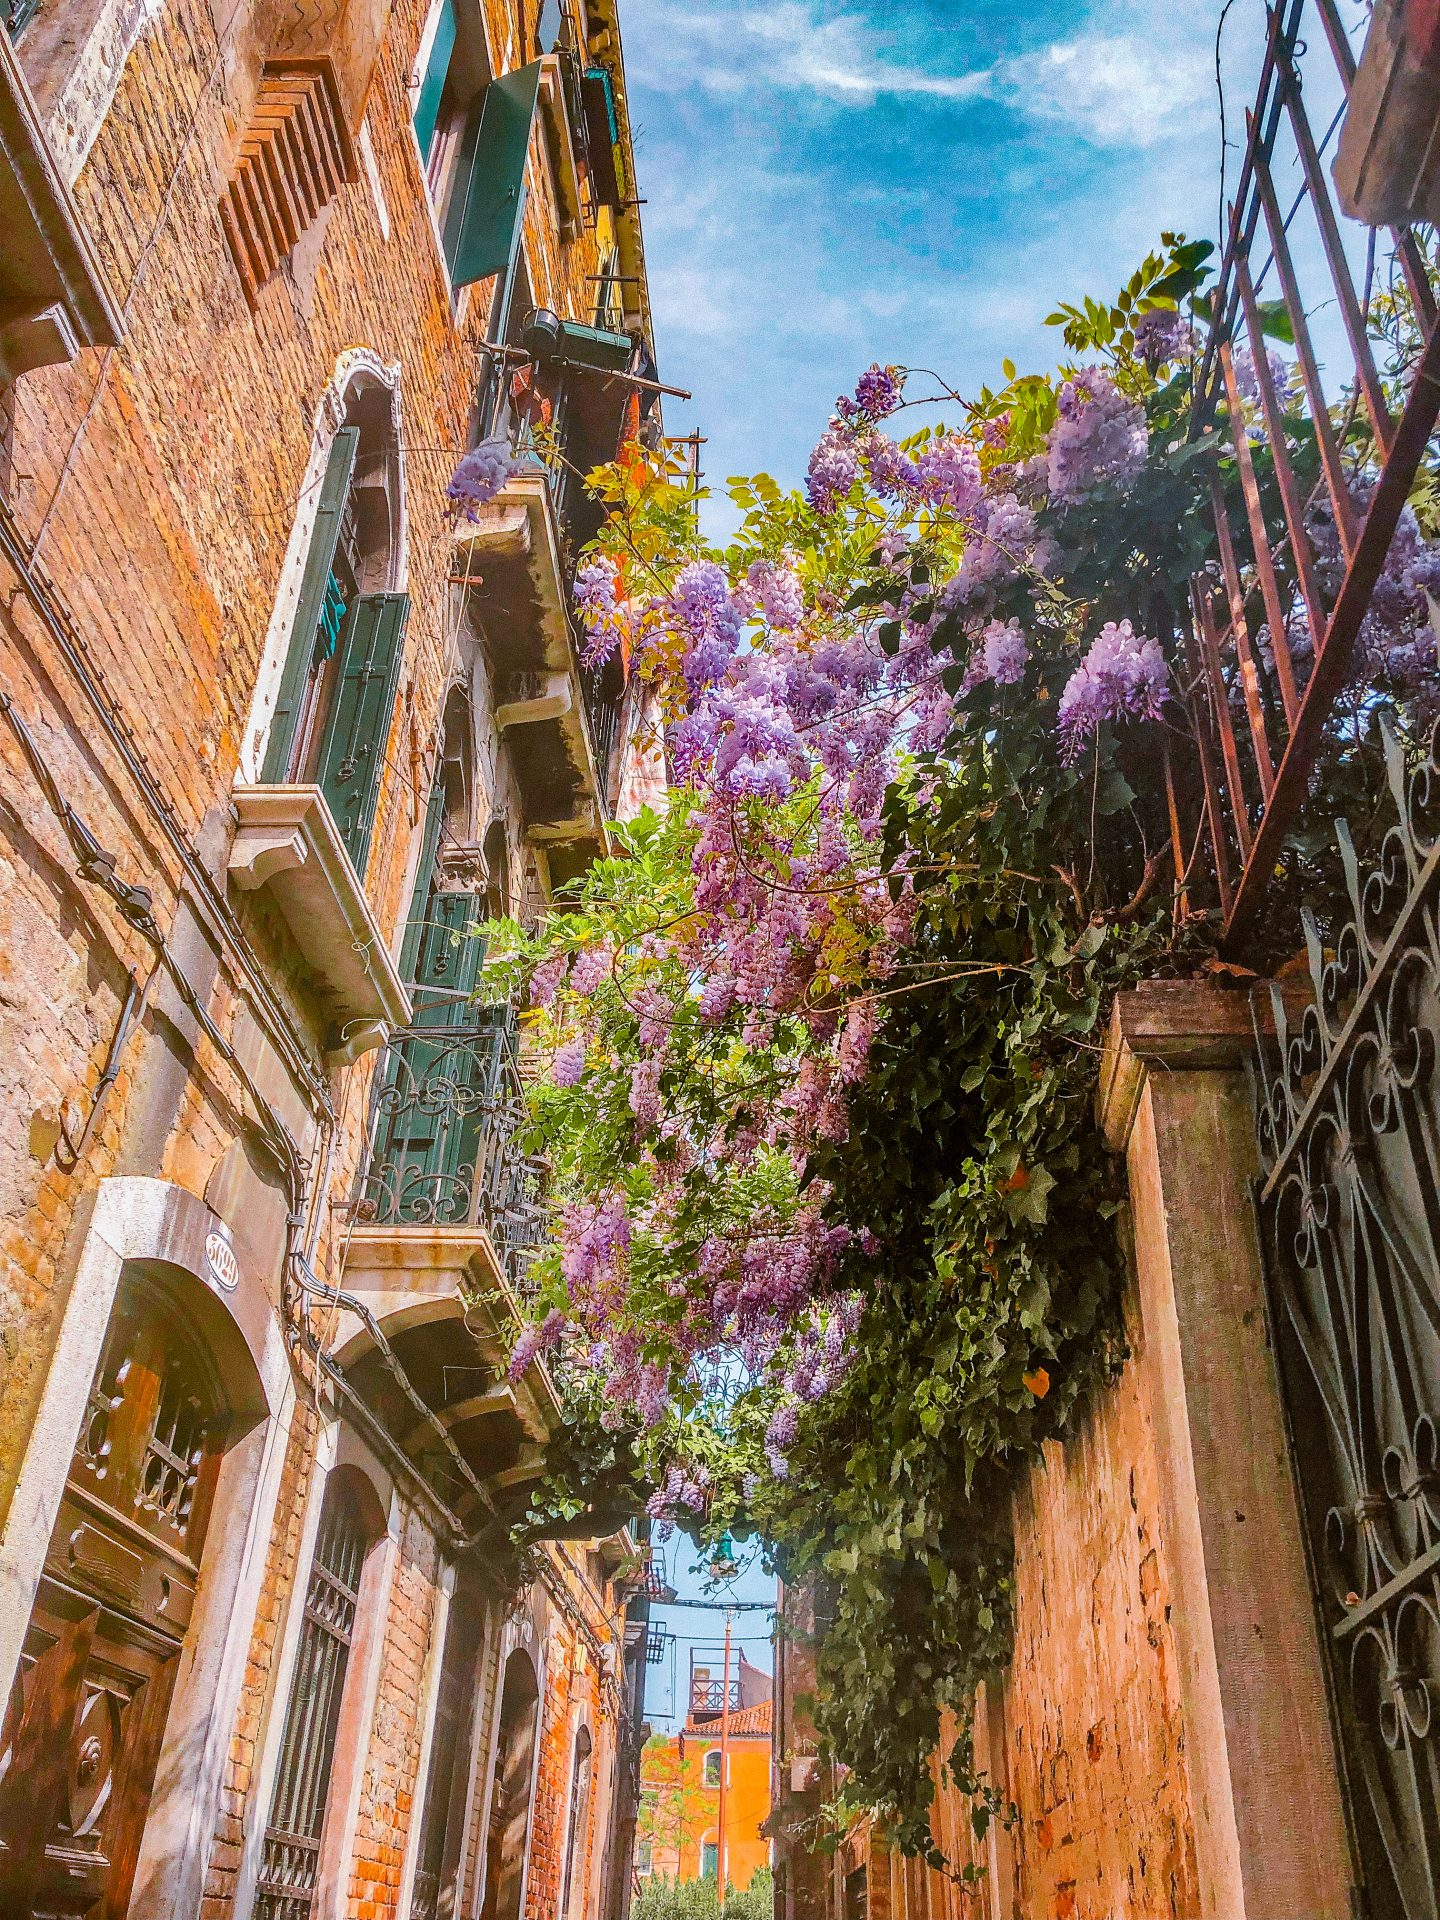 Wisteria flowers blooming and hanging over a walkway in Venice, Italy